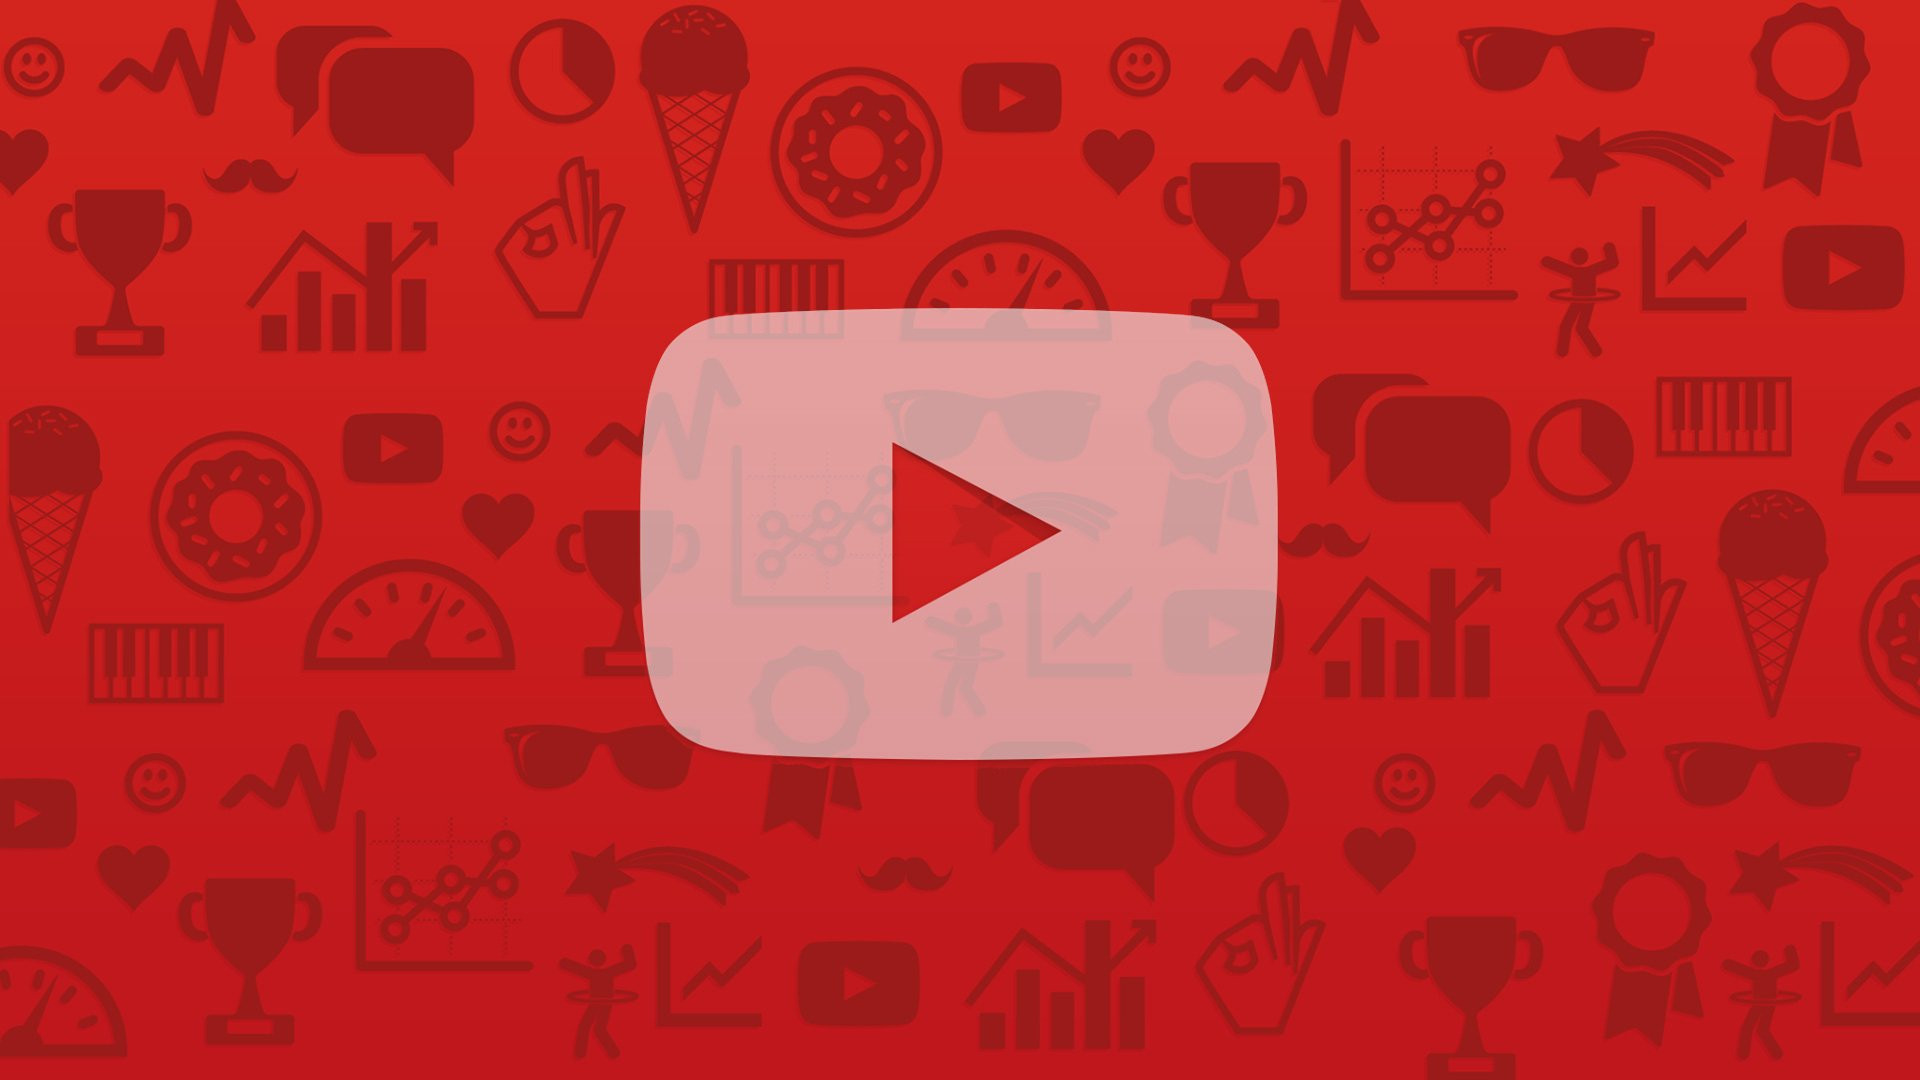 youtube puter hd background wallpaper hd wallpapers